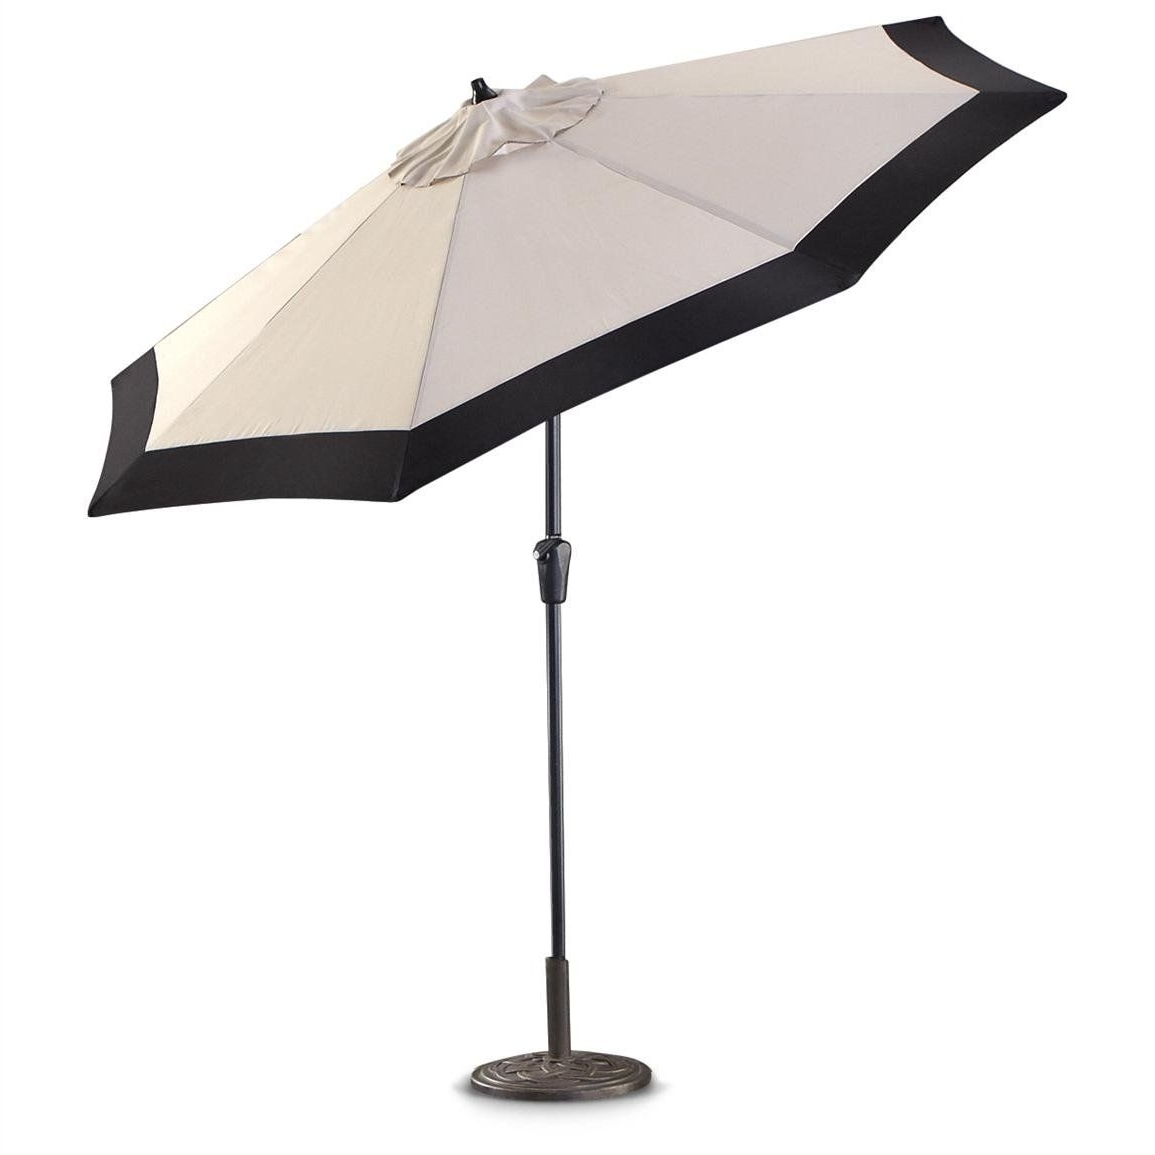 Black And White Patio Umbrellas Throughout Most Popular White Patio Umbrellas #5: Castlecreek 9 Two Tone Deluxe Market Patio (Gallery 4 of 20)